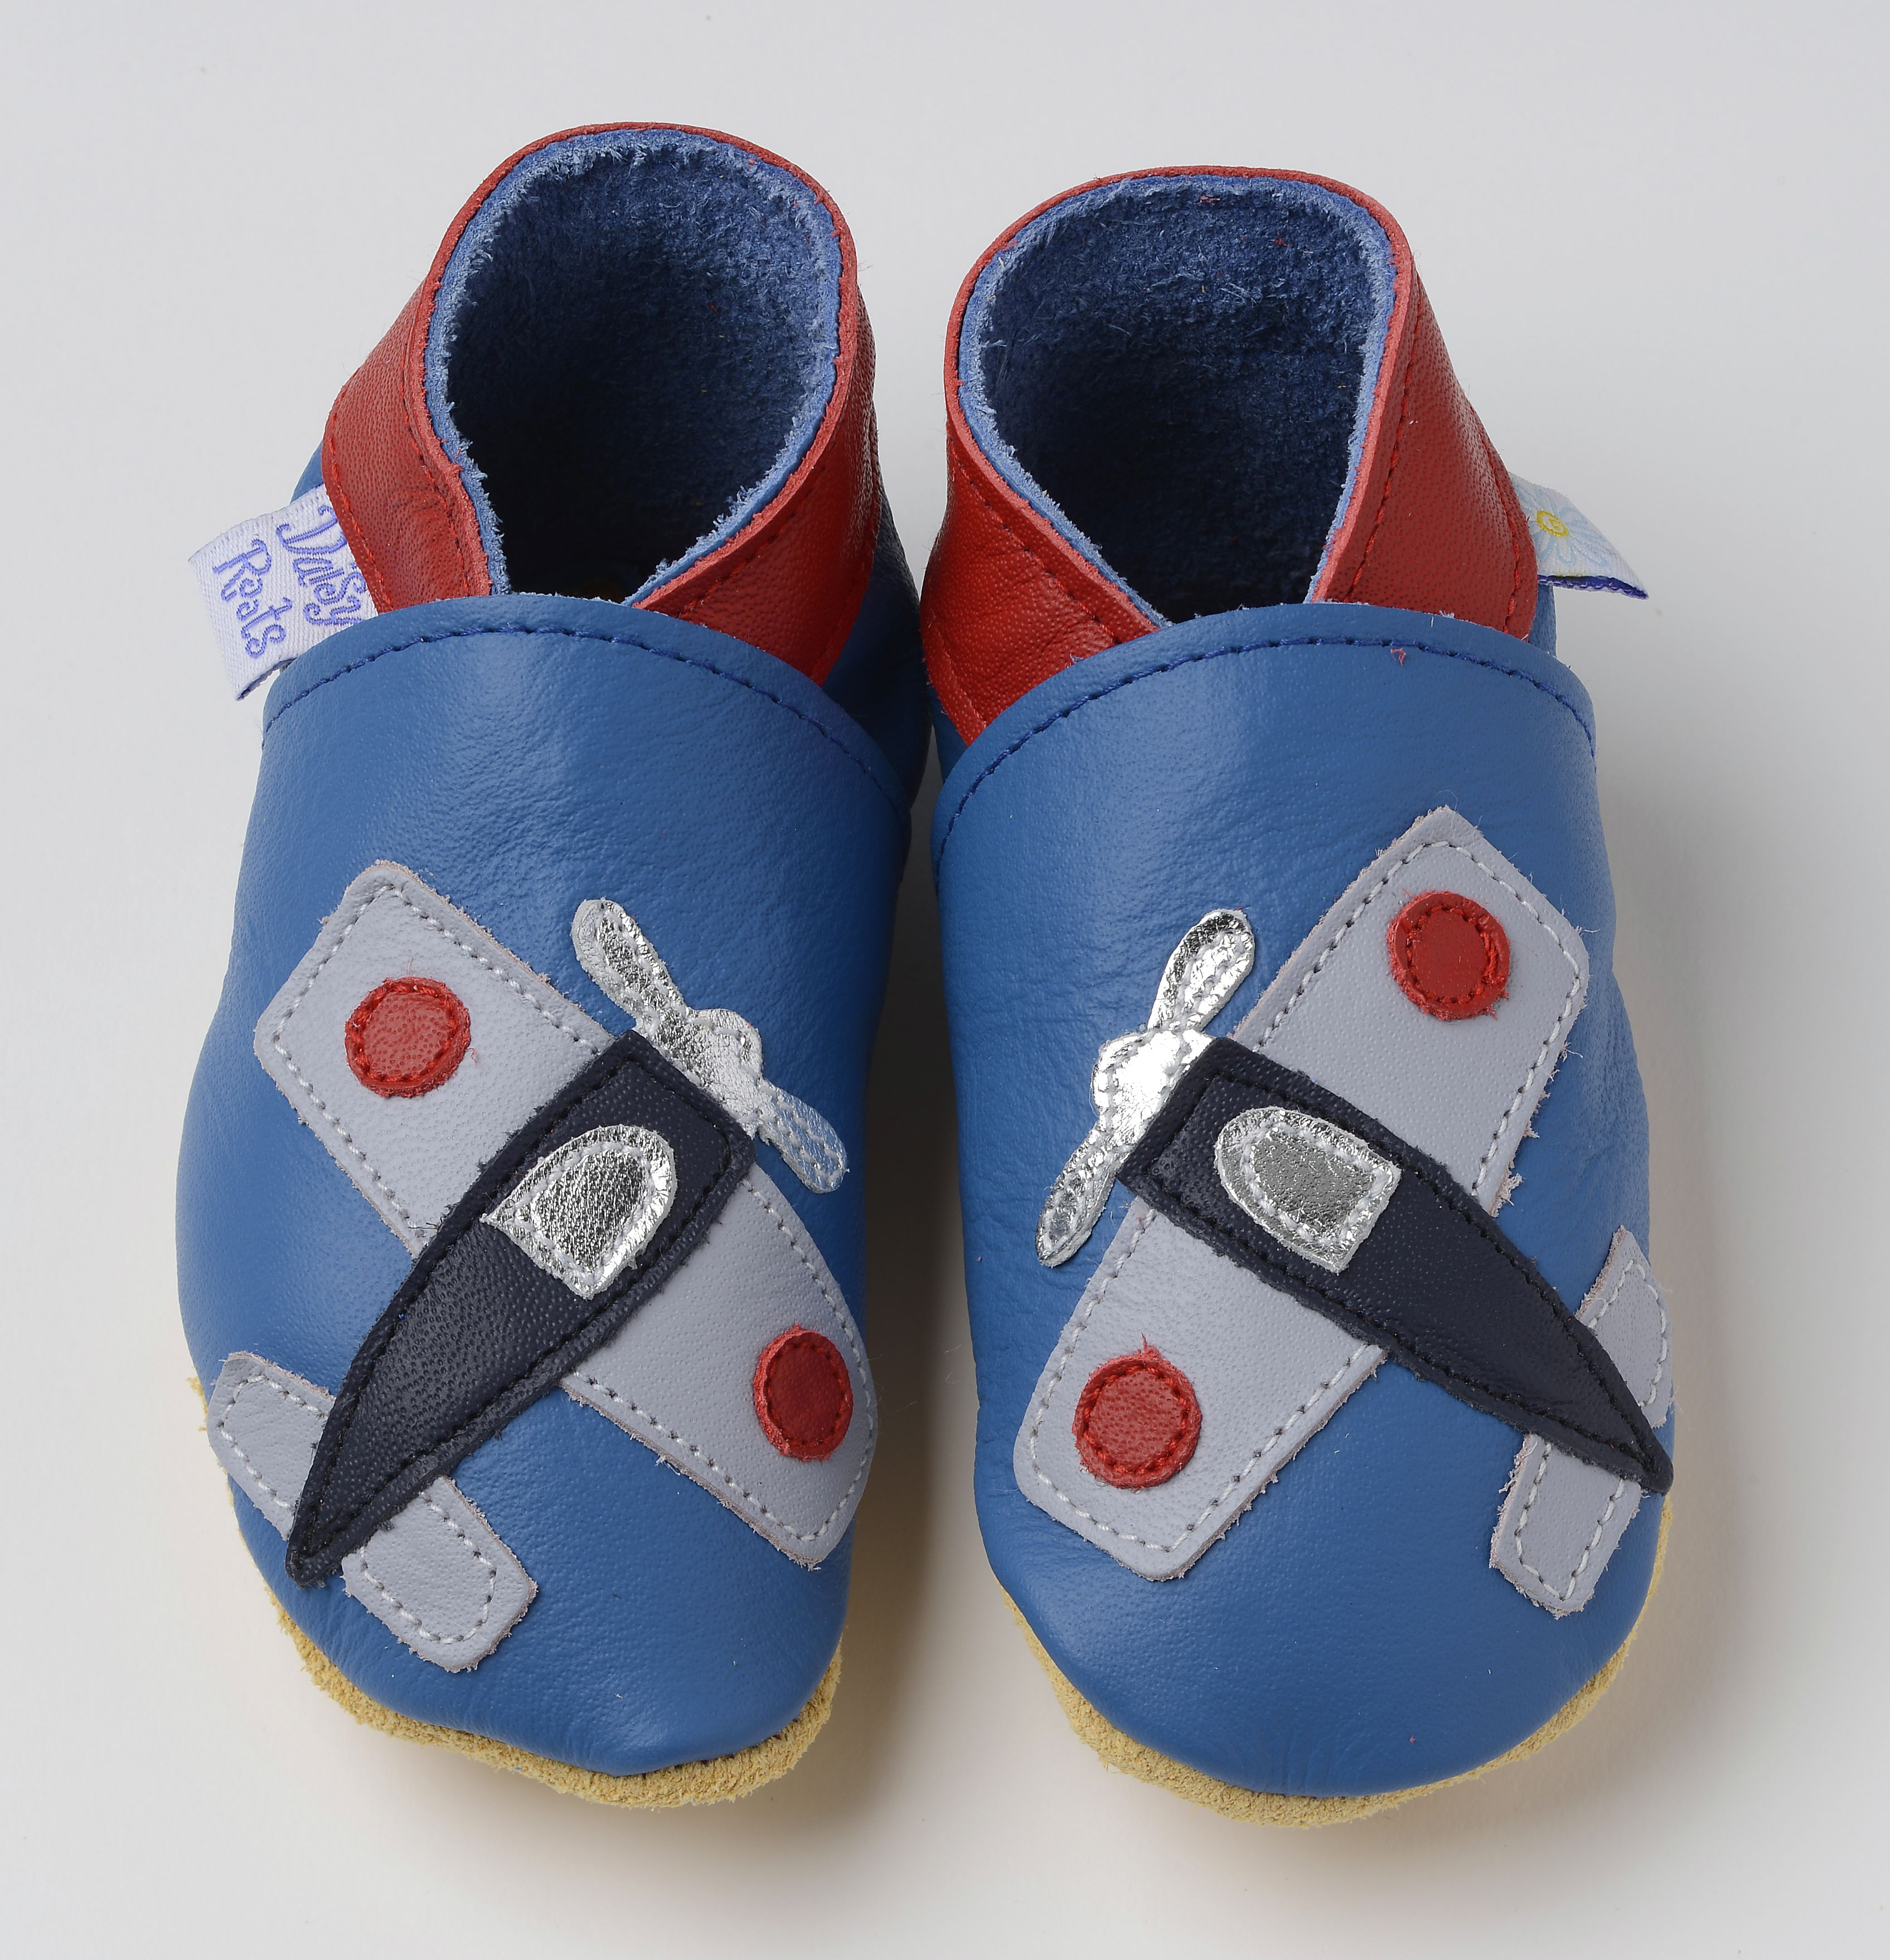 Aeroplane Navy Plane on Sky Blue soft soled baby bootie shoes t